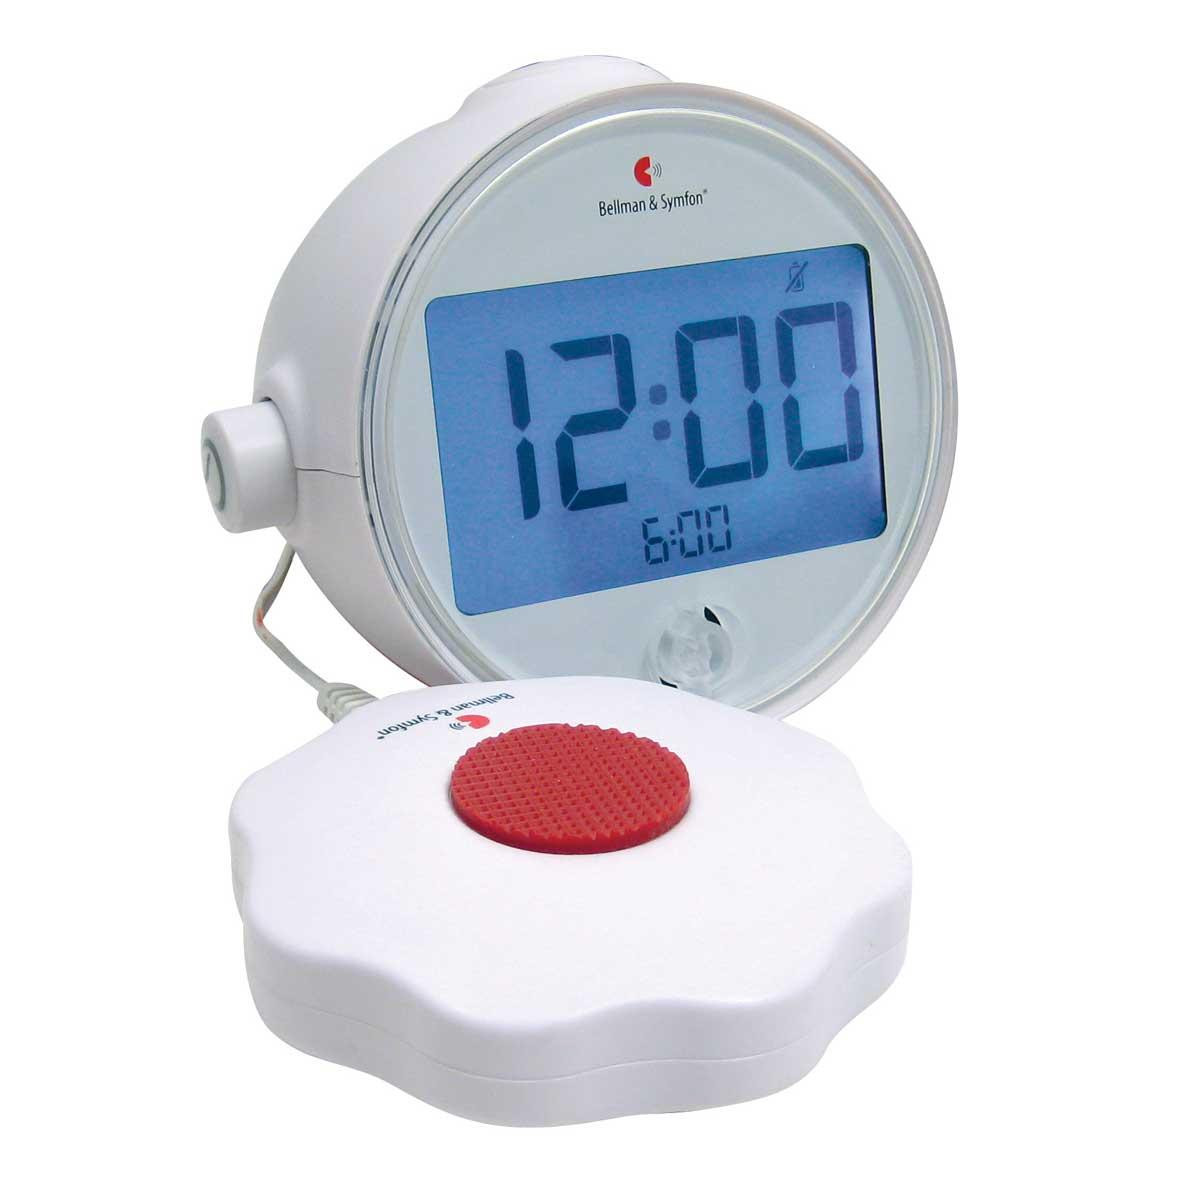 Shop Bellman Amp Symfon Alarm Clock With Bed Shaker Online